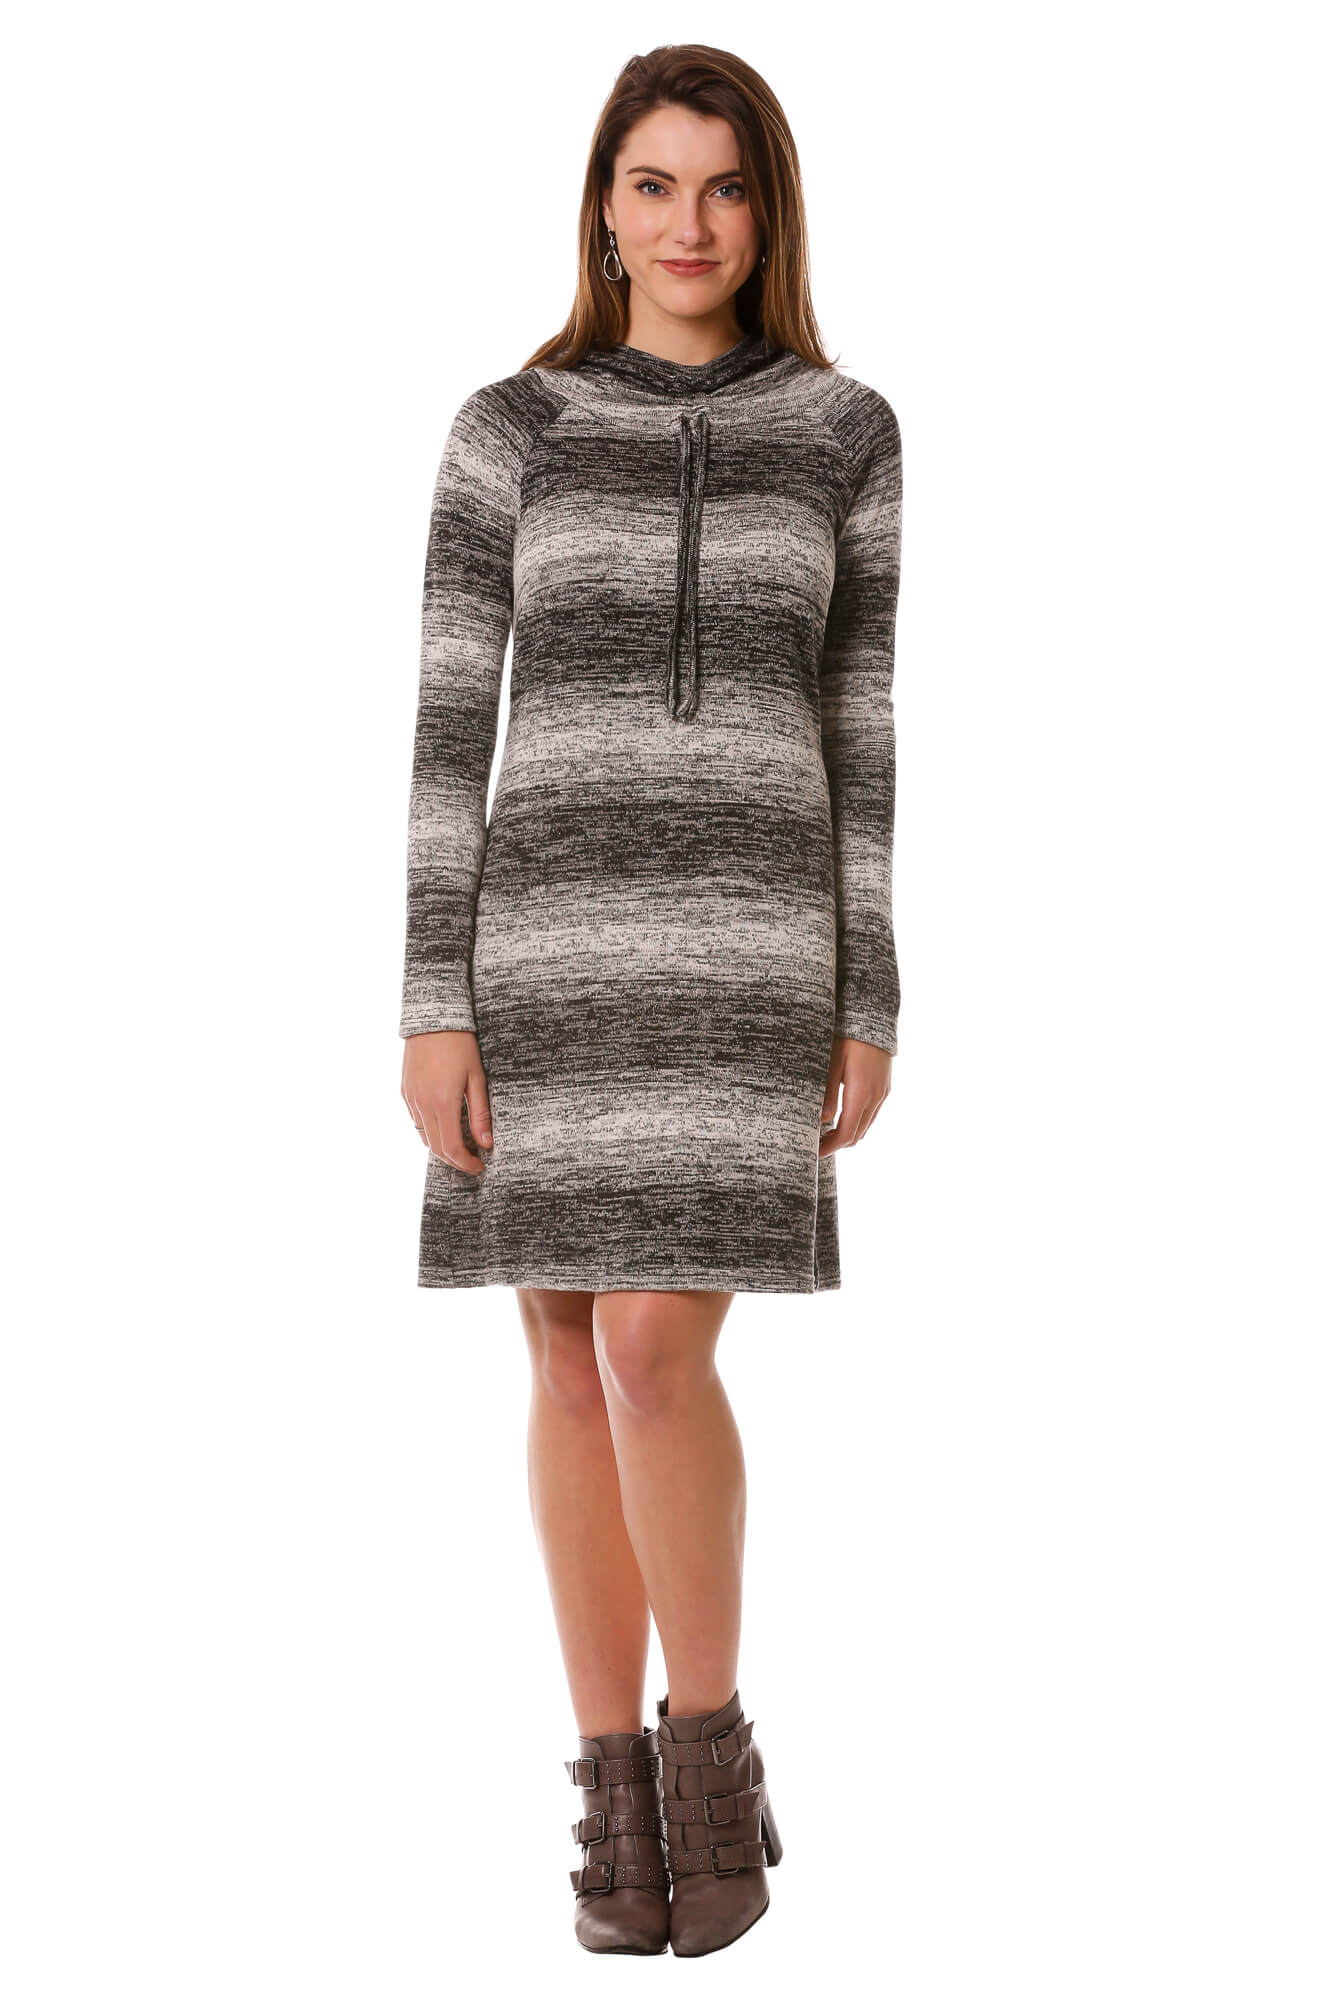 Women's Grey Striped Hoodie Sweater Dress with Cowl Neck | Neesha